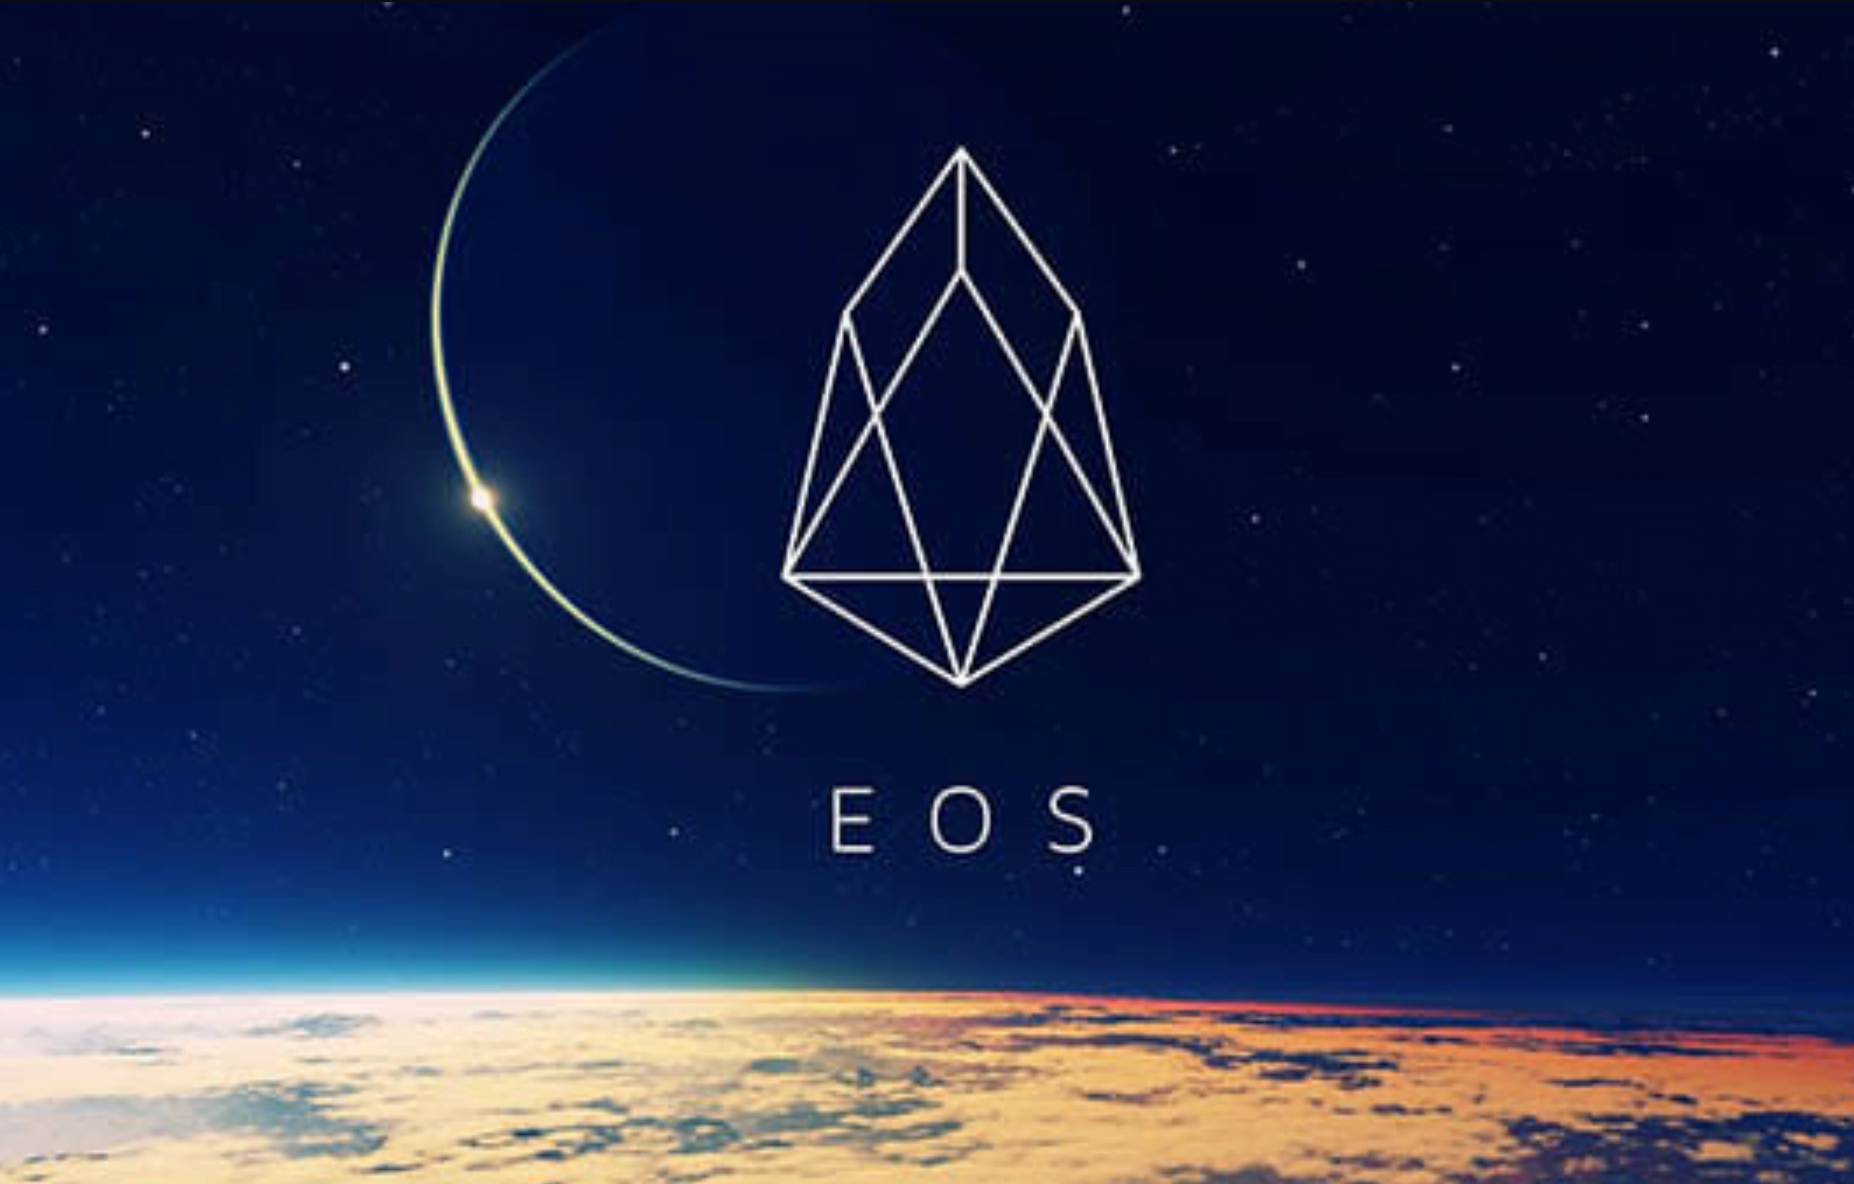 EOS Revisited: Investors Take Another Look at the Longest-Running ICO